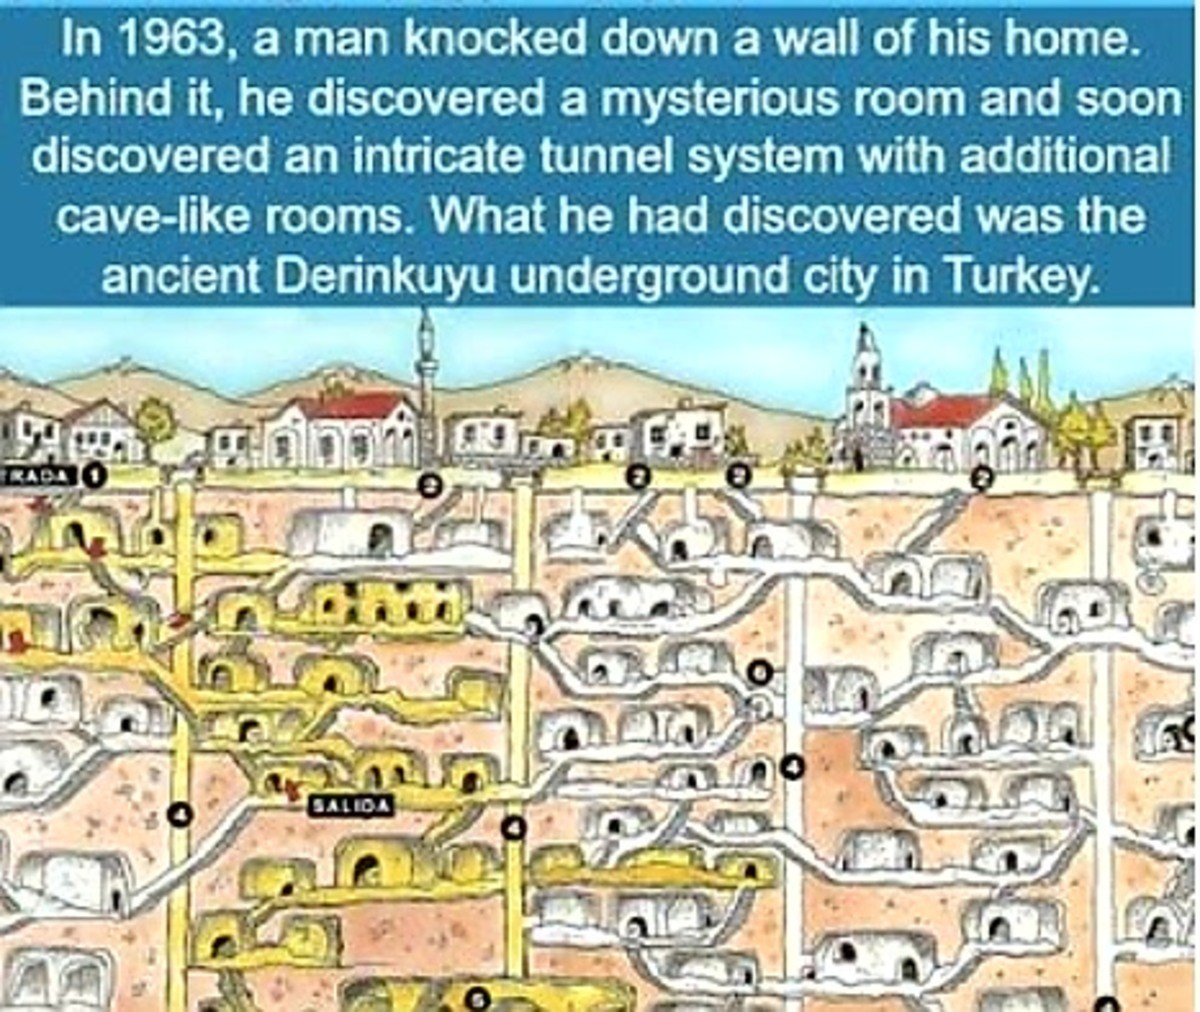 Free Storage Space. .. How much fun would it have been to not tell anyone and just have your own private underground city for a few decades?